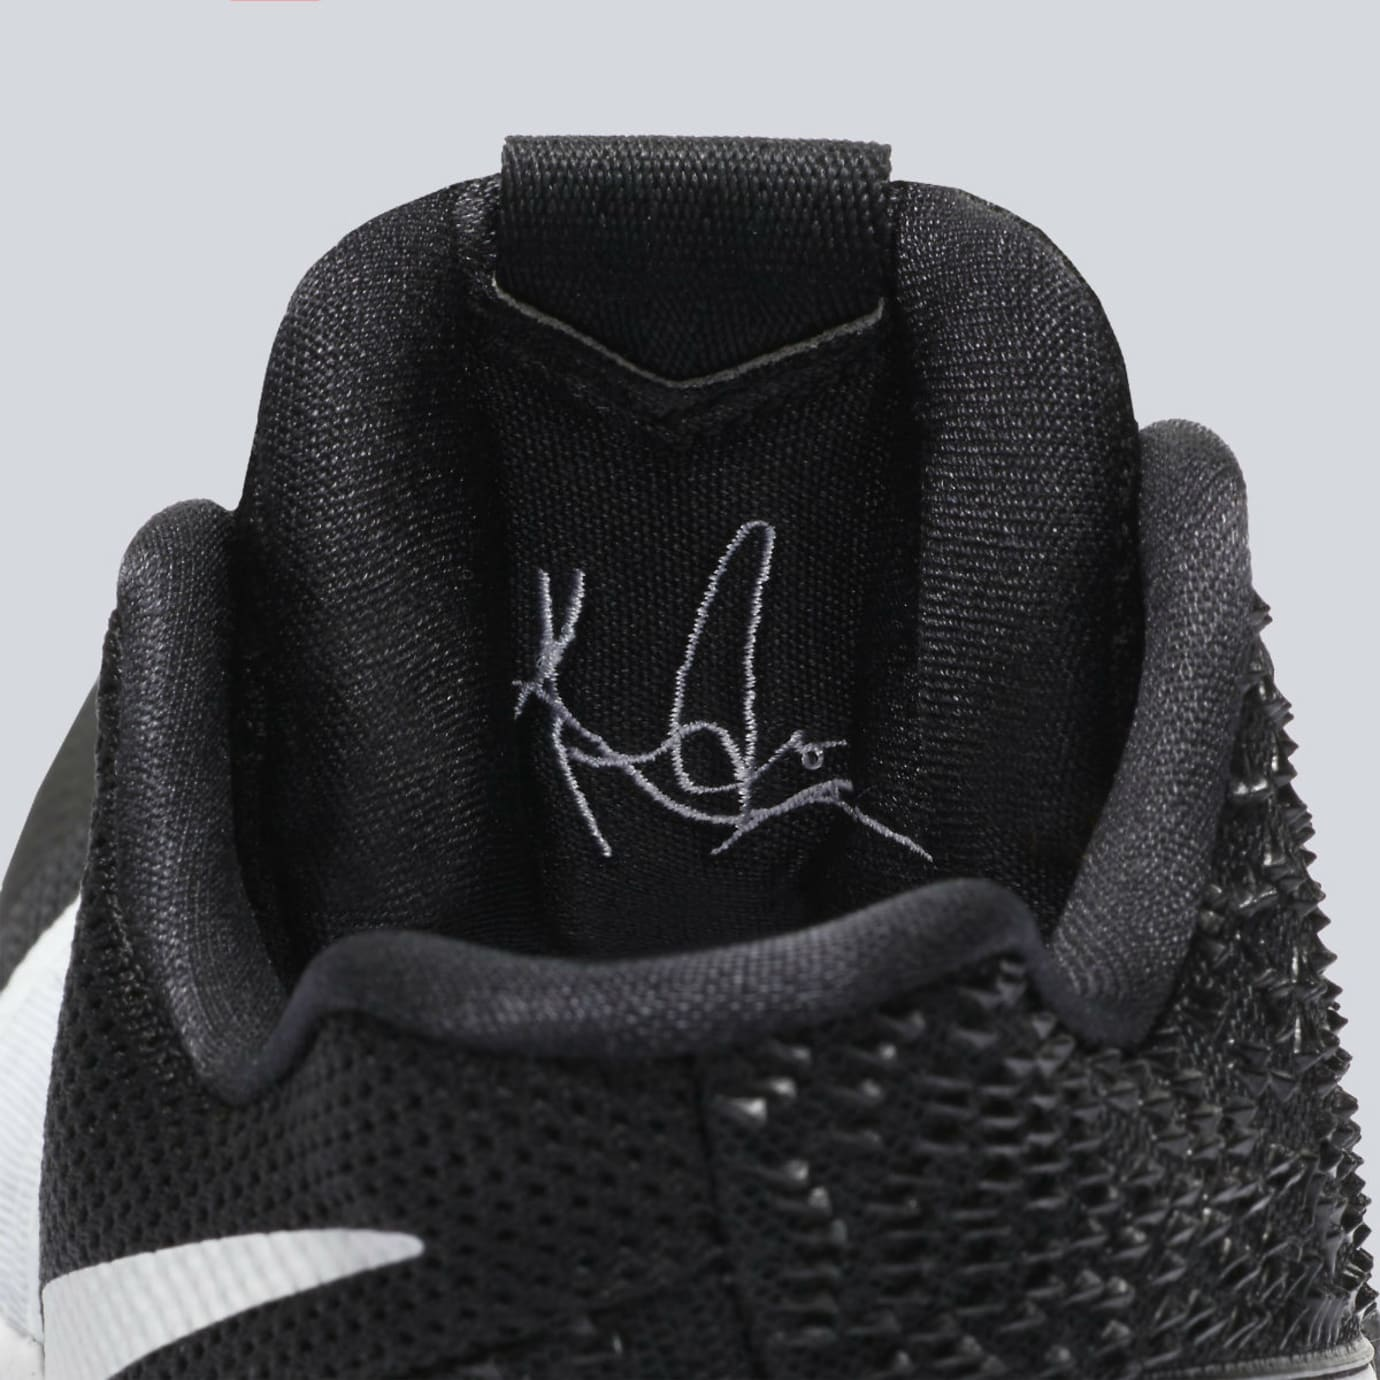 a73496a8c7aa Nike Kyrie 3 Black White Tuxedo Release Date Tongue 917724-001 ...